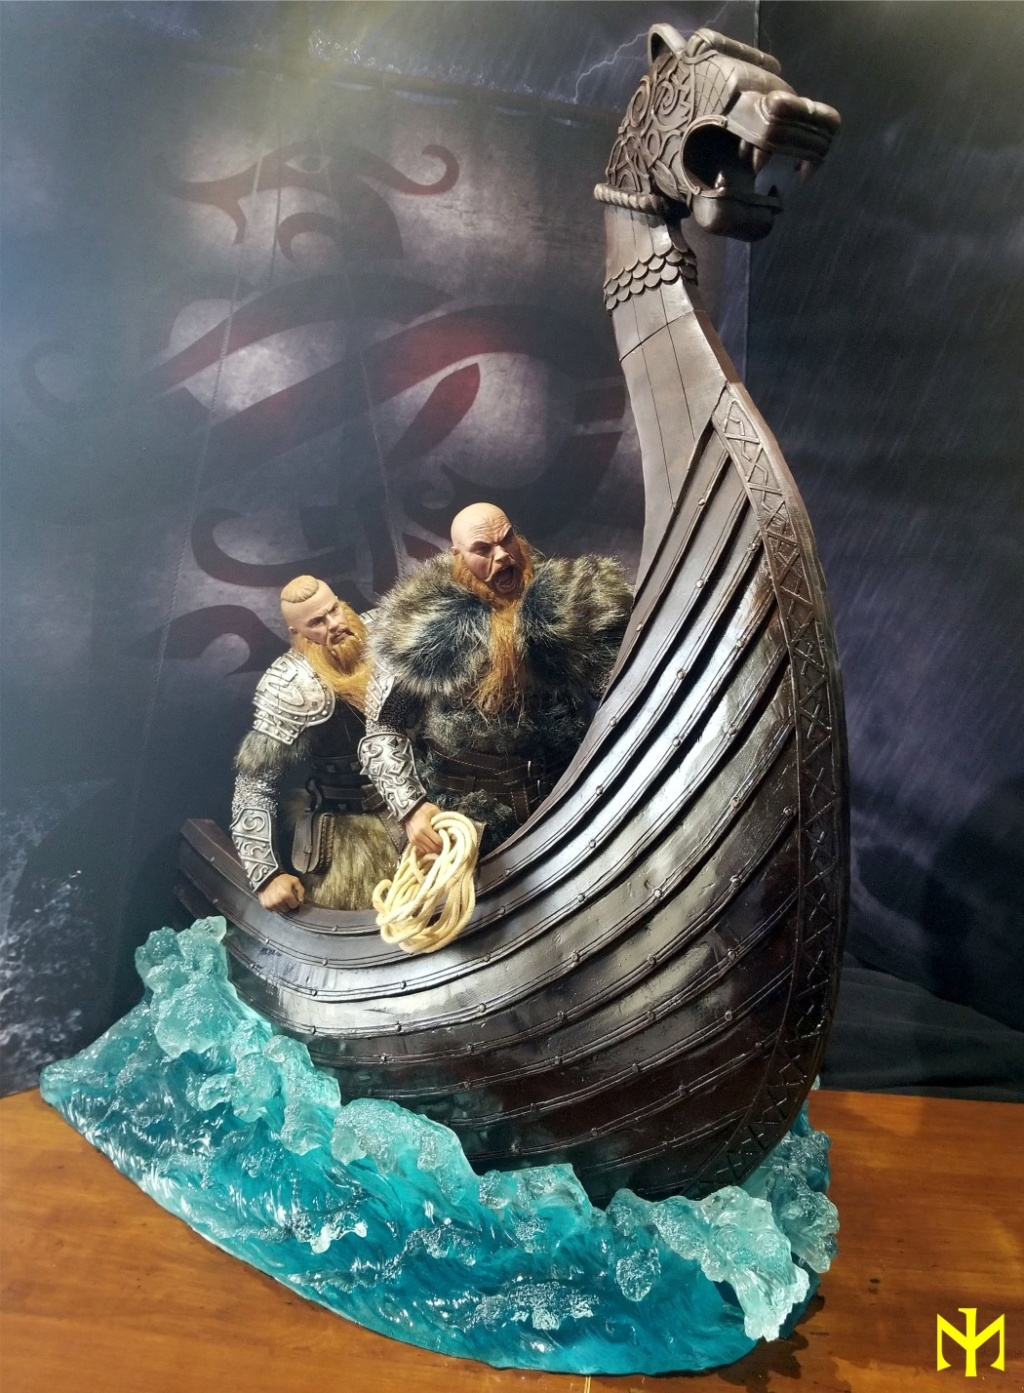 vikings - Vikings Vanquisher Viking Ship Diorama Coomodel Review Viking31